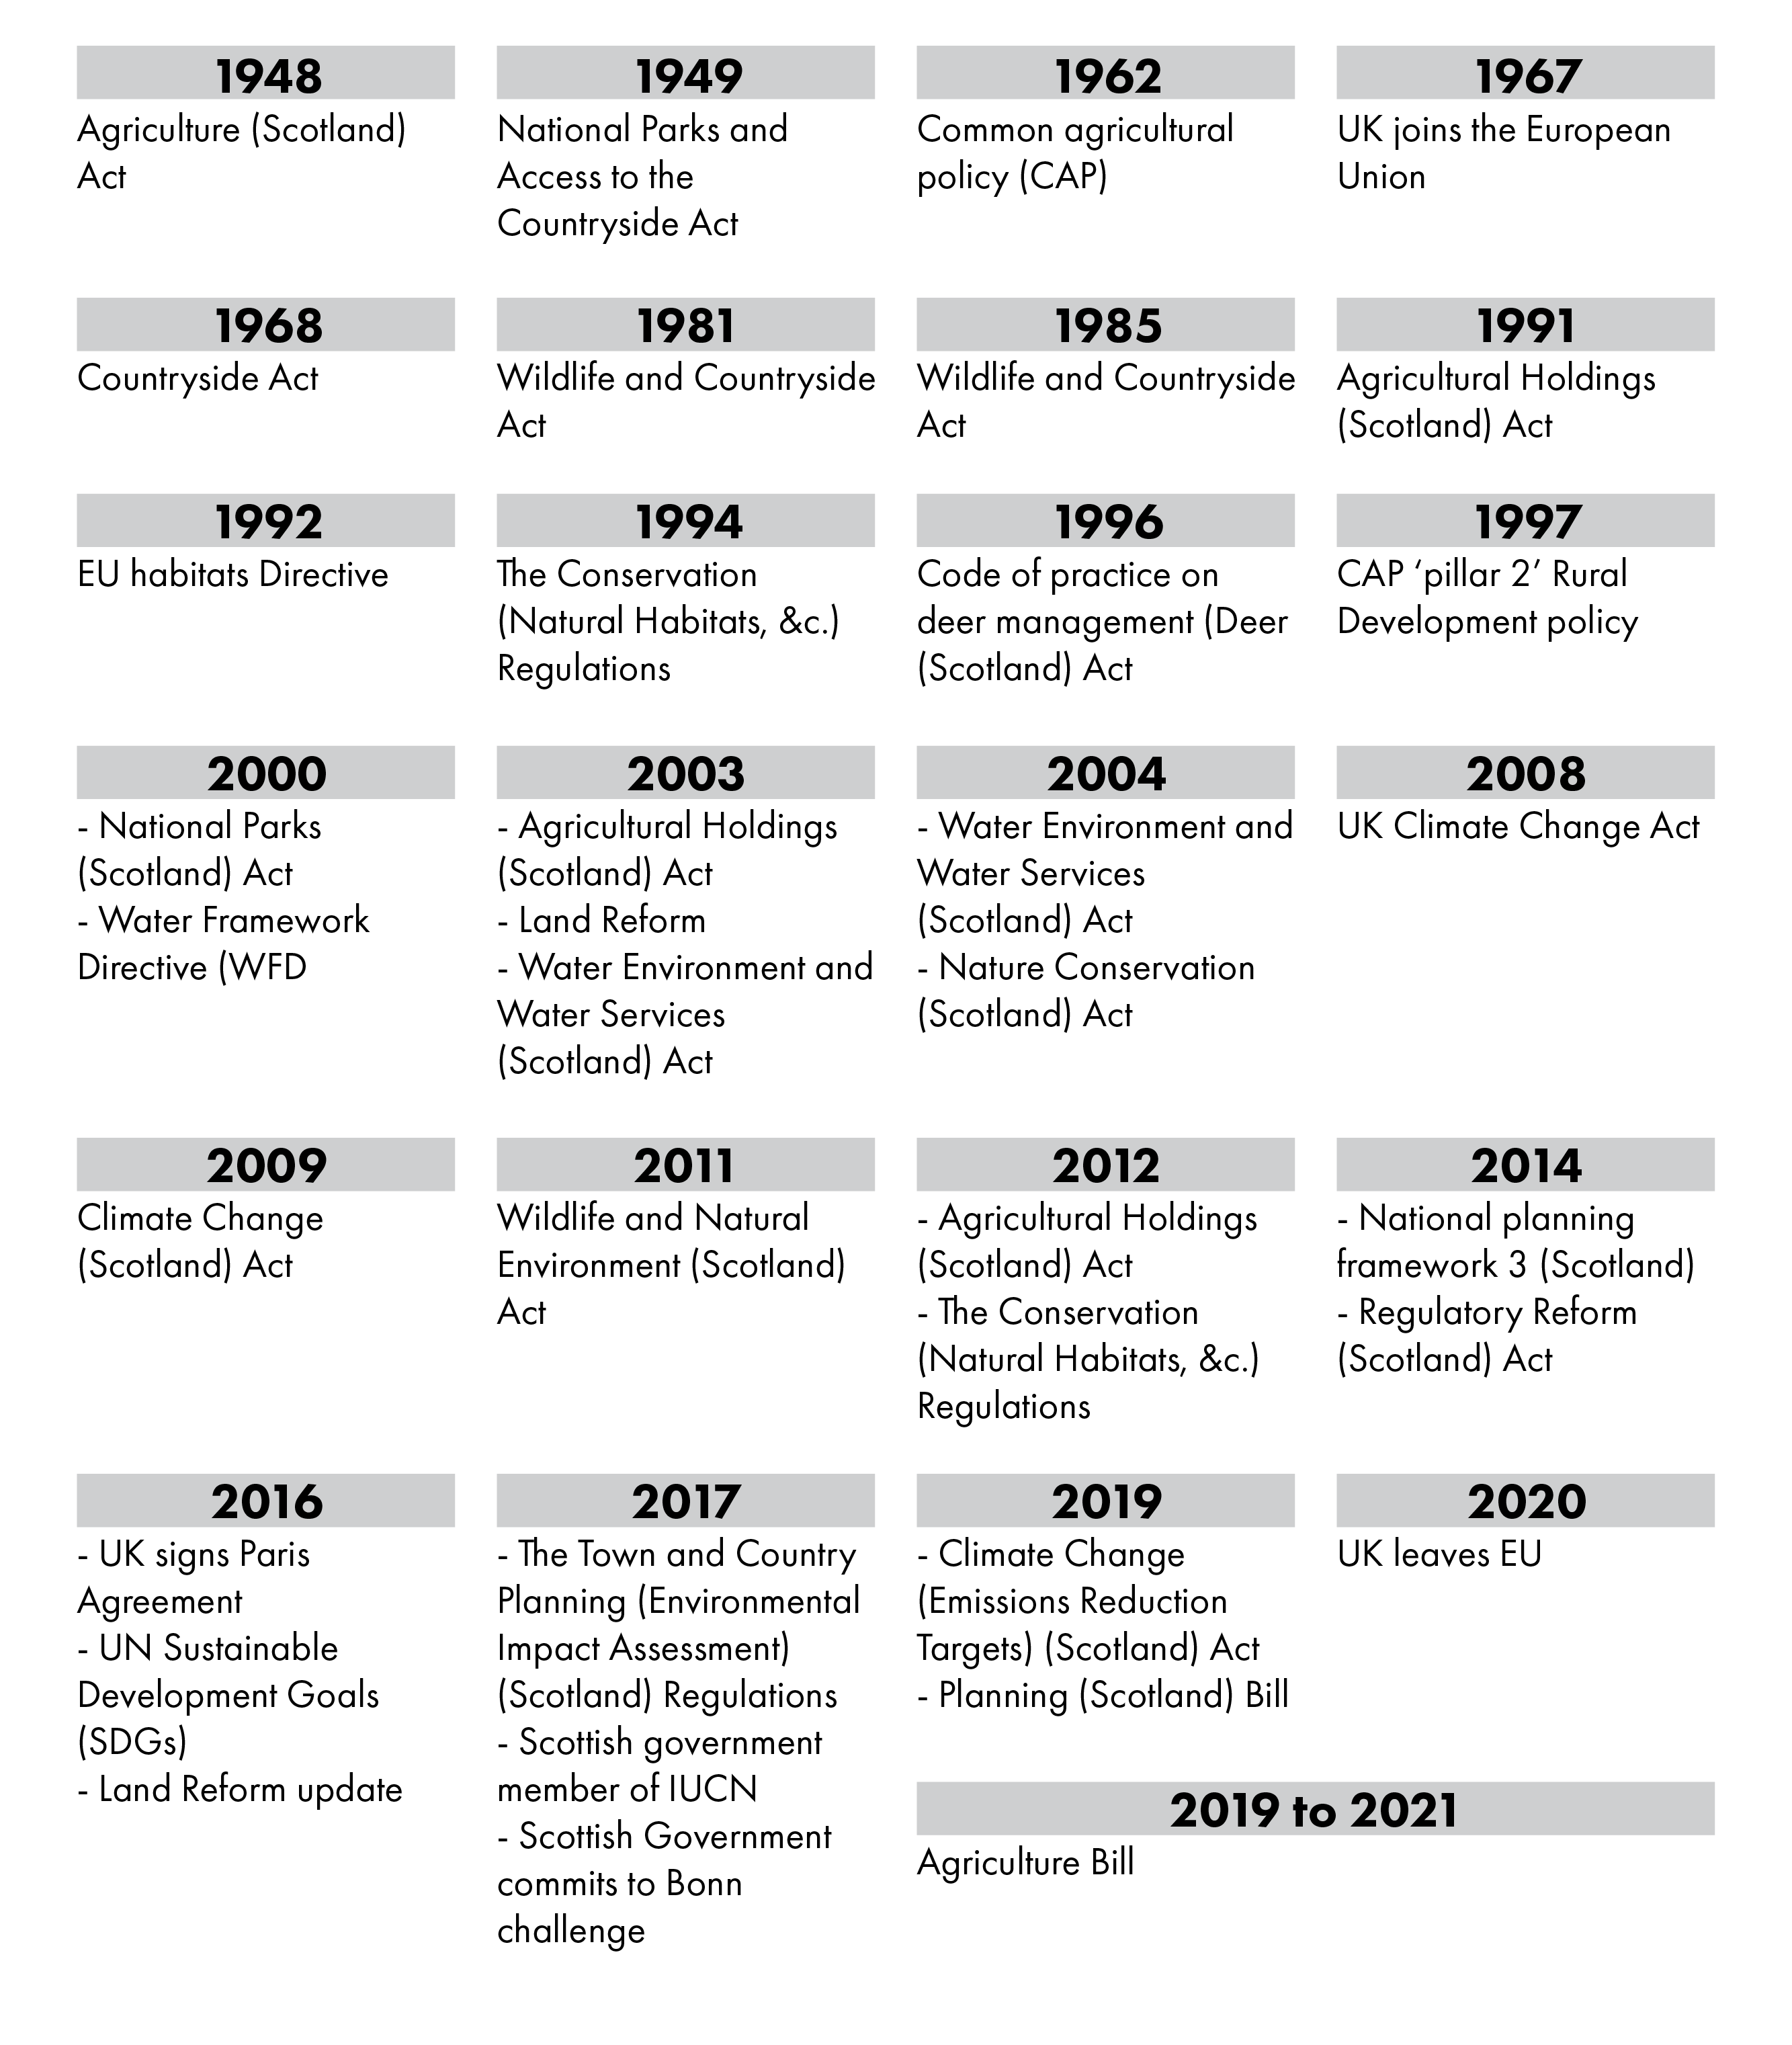 Key policies, Acts and strategies that have occurred since 1948